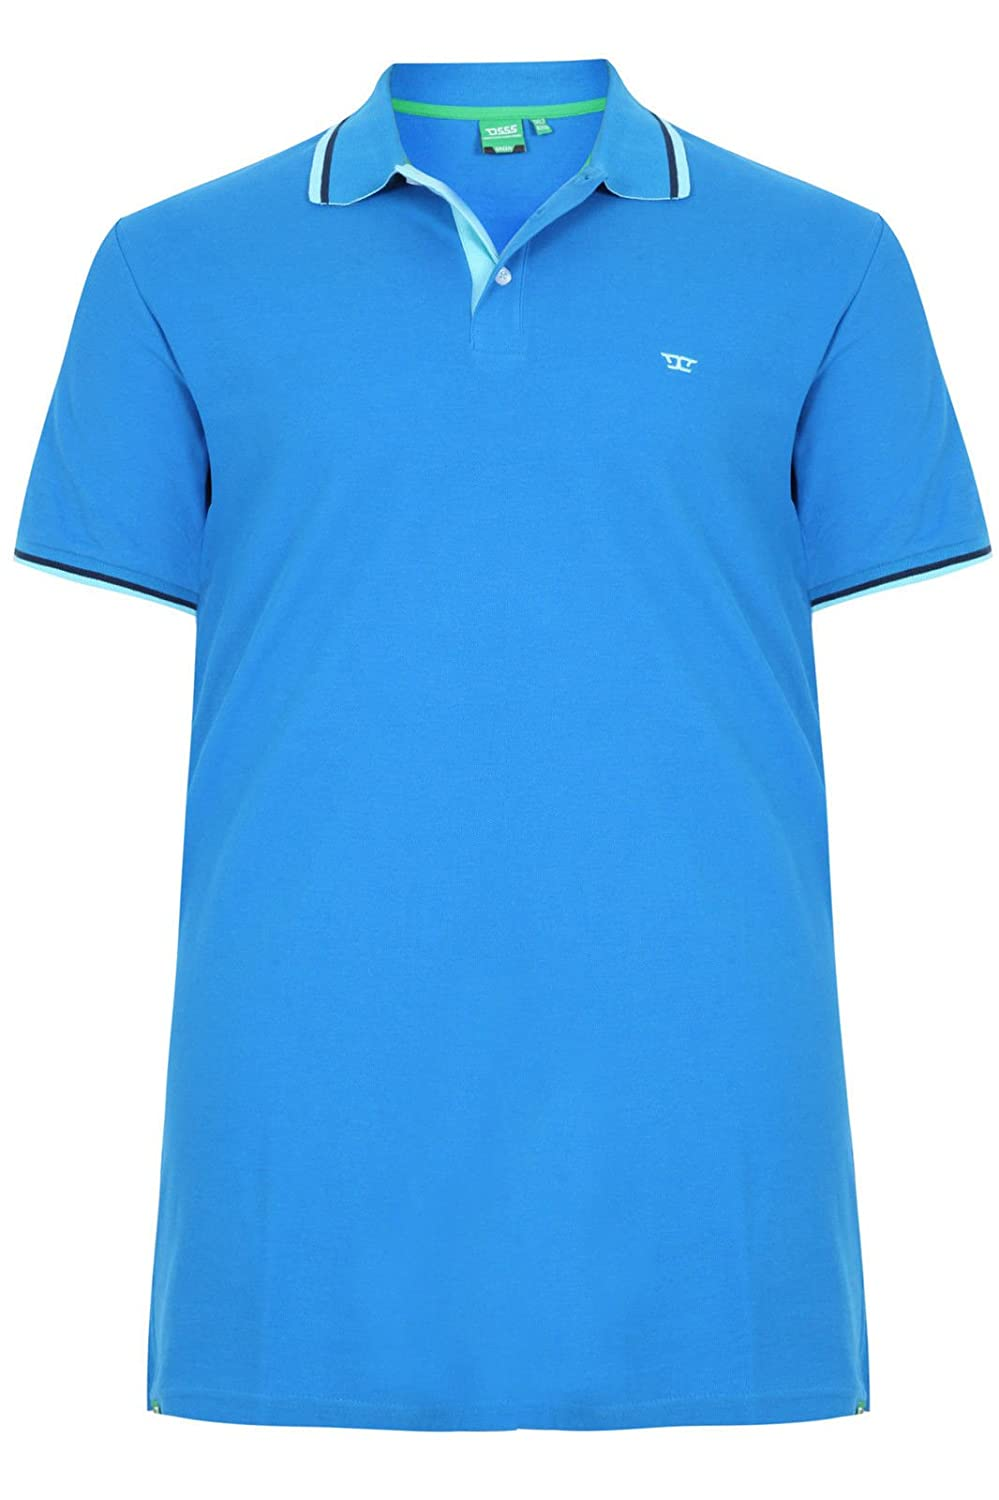 RACER-D555 Mens Extra Tall Polo Shirt With Contrast Tipping /& Chest Embroidry